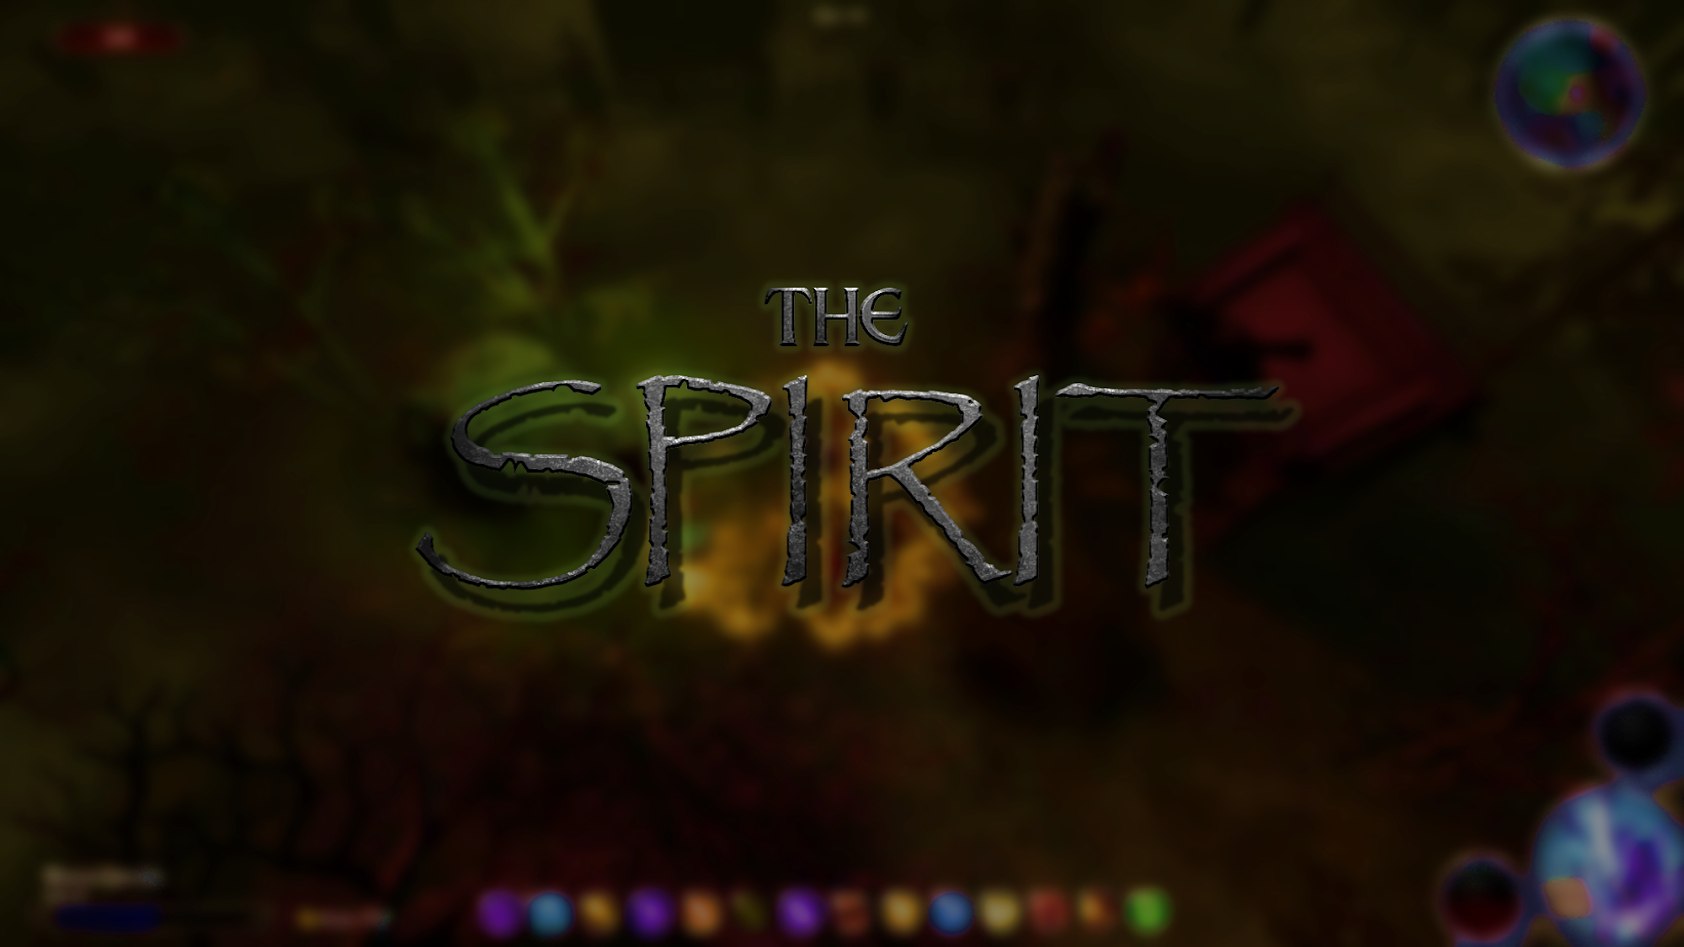 The Sprit Is A Stunning Indie Rogue Like With AAA Visuals